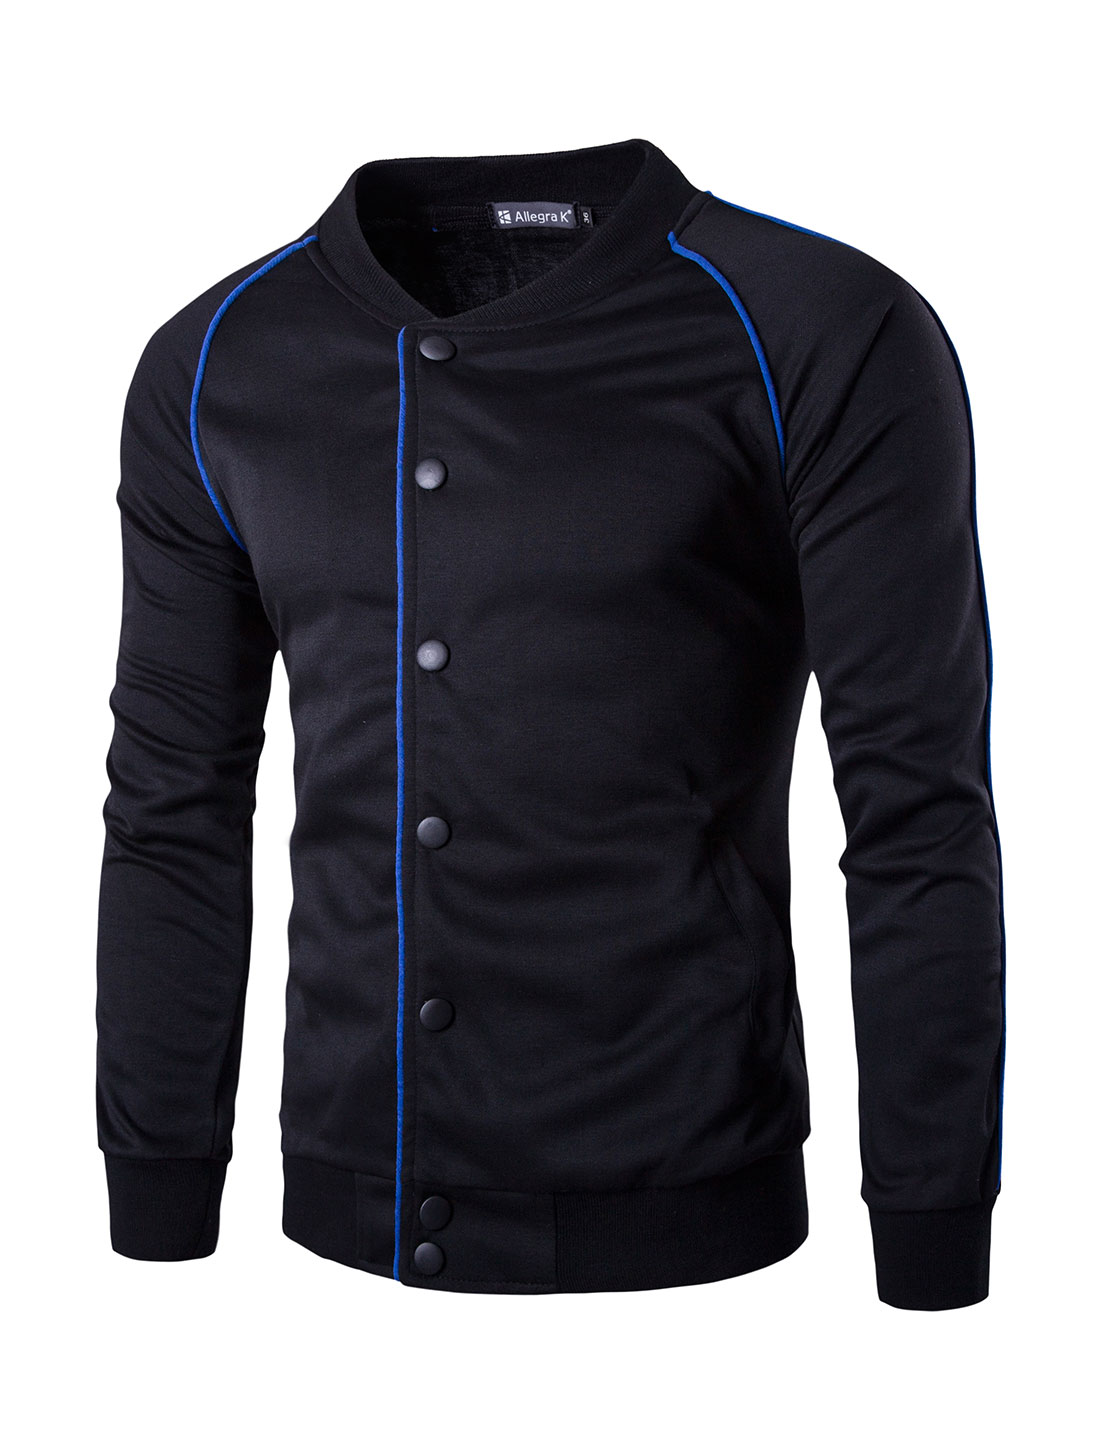 Men Snap Button Fastener Raglan Sleeves Piped Jacket Black M